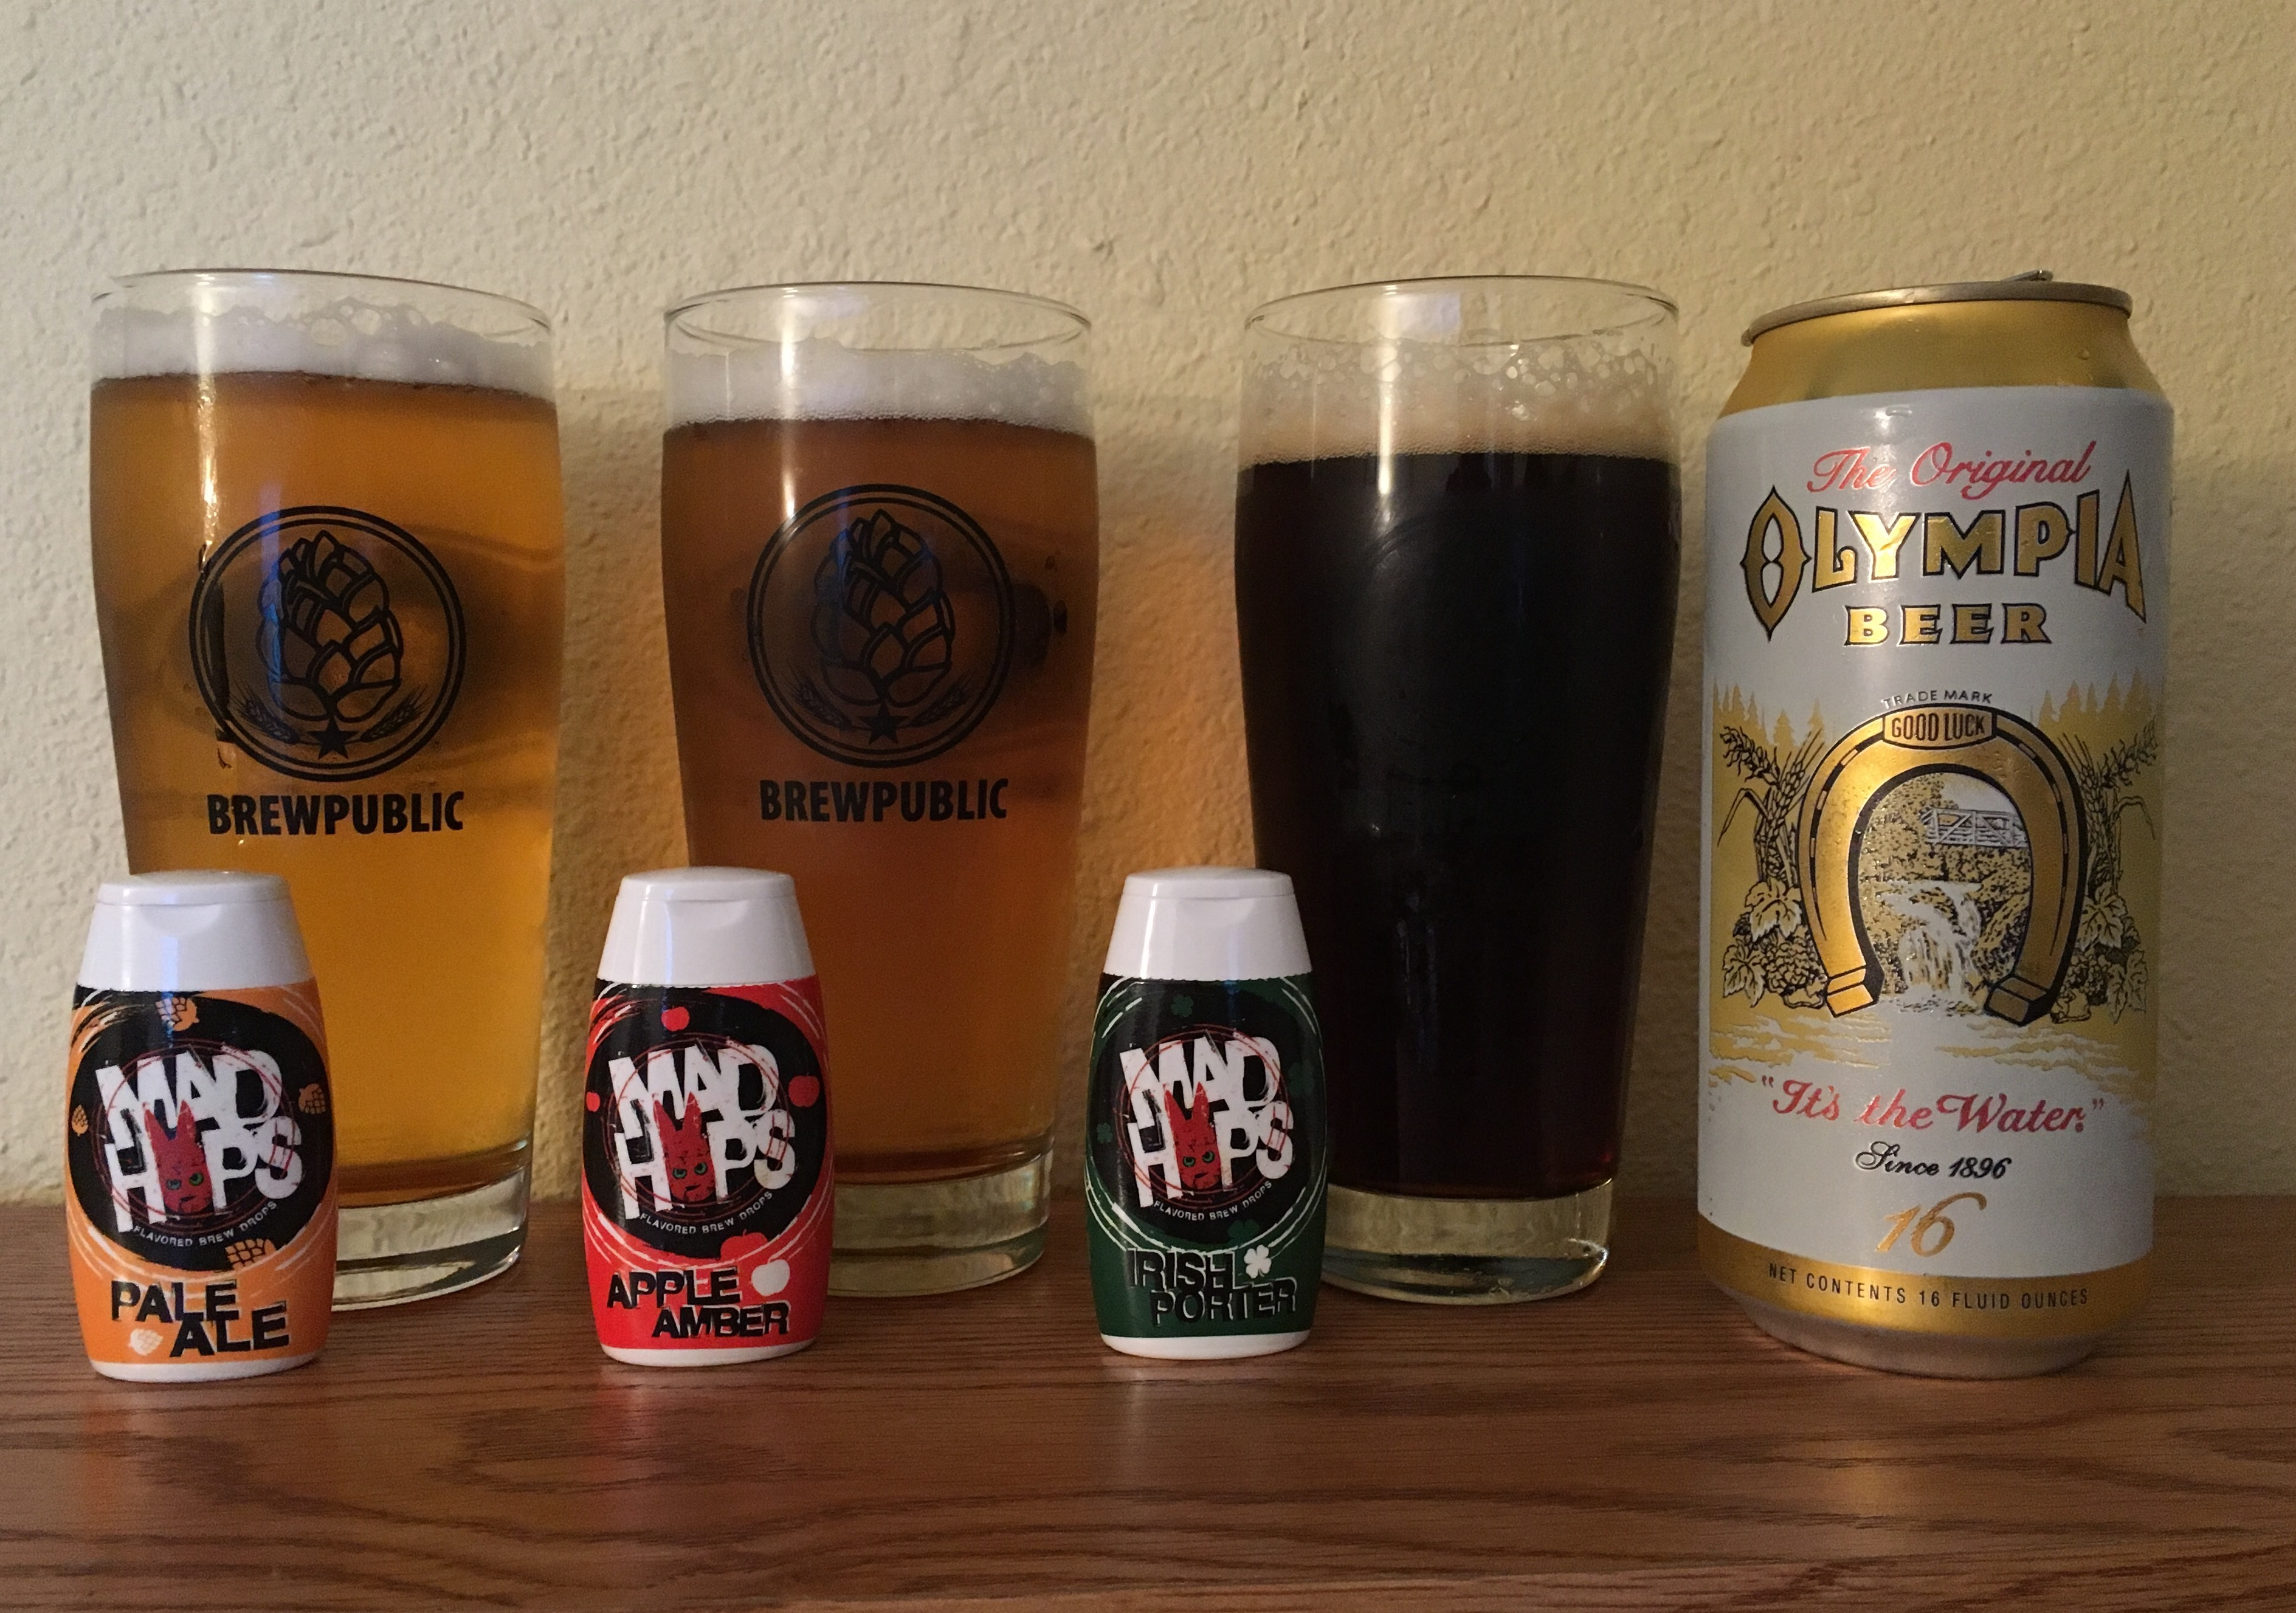 Mad Hops Pale Ale, Apple Amber, and Irish Porter mixed with Olympia Beer.